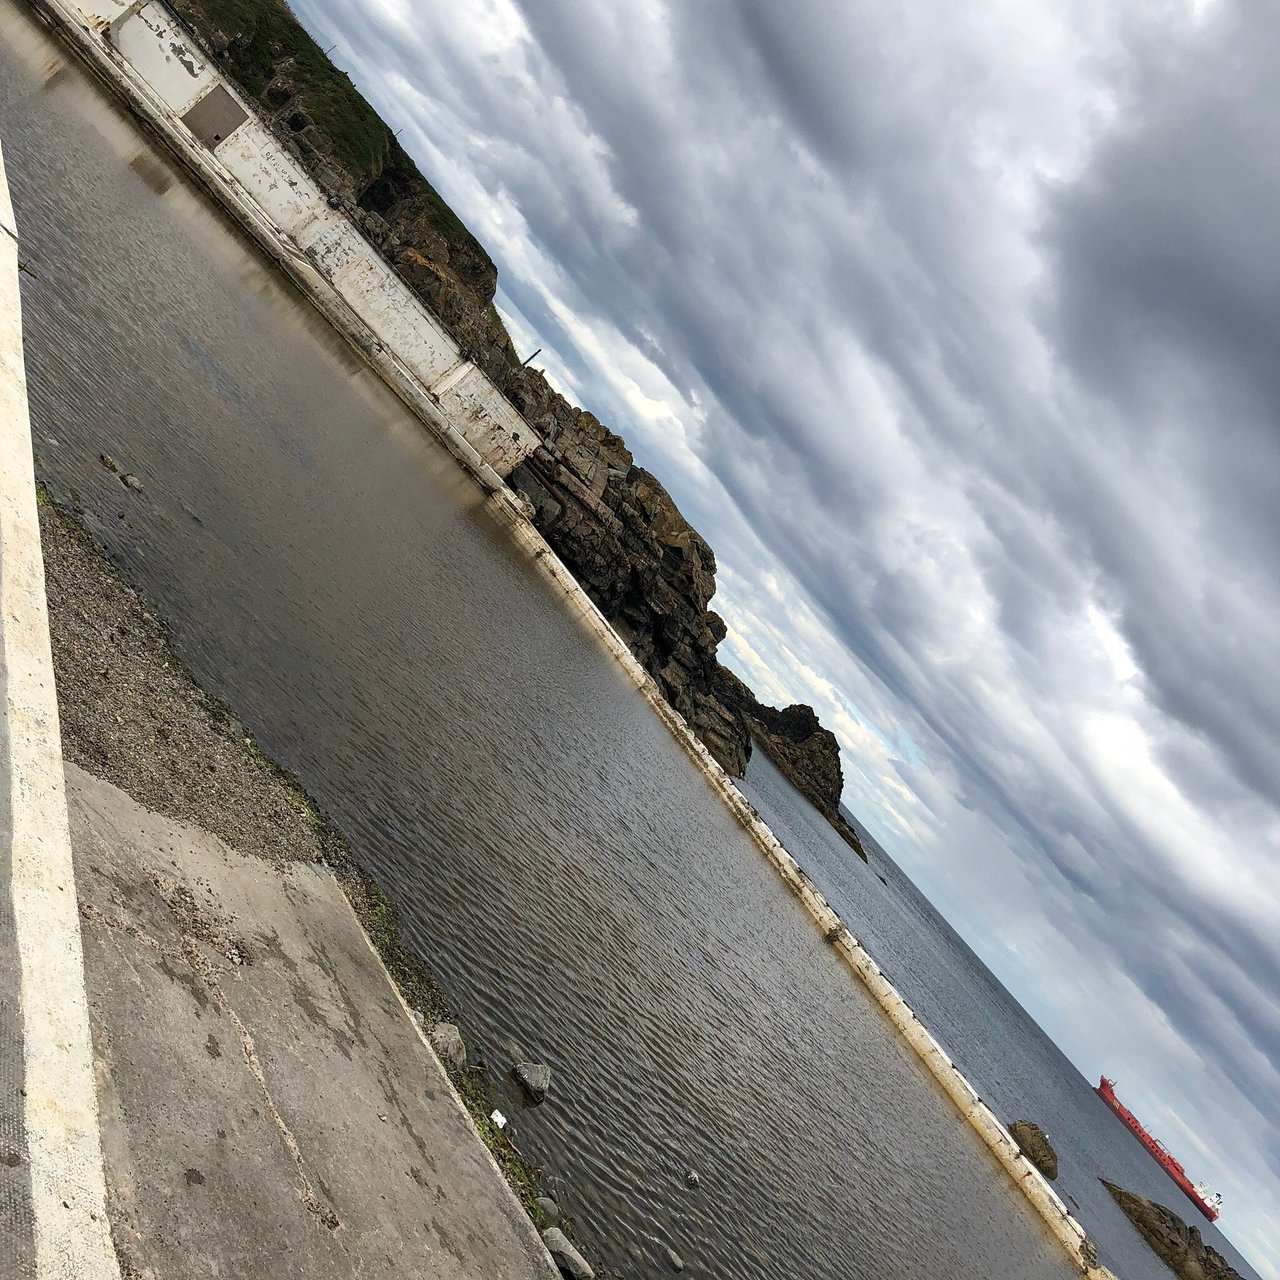 Tarlair Open Air Swimming Pool Macduff 2021 All You Need To Know Before You Go With Photos Tripadvisor